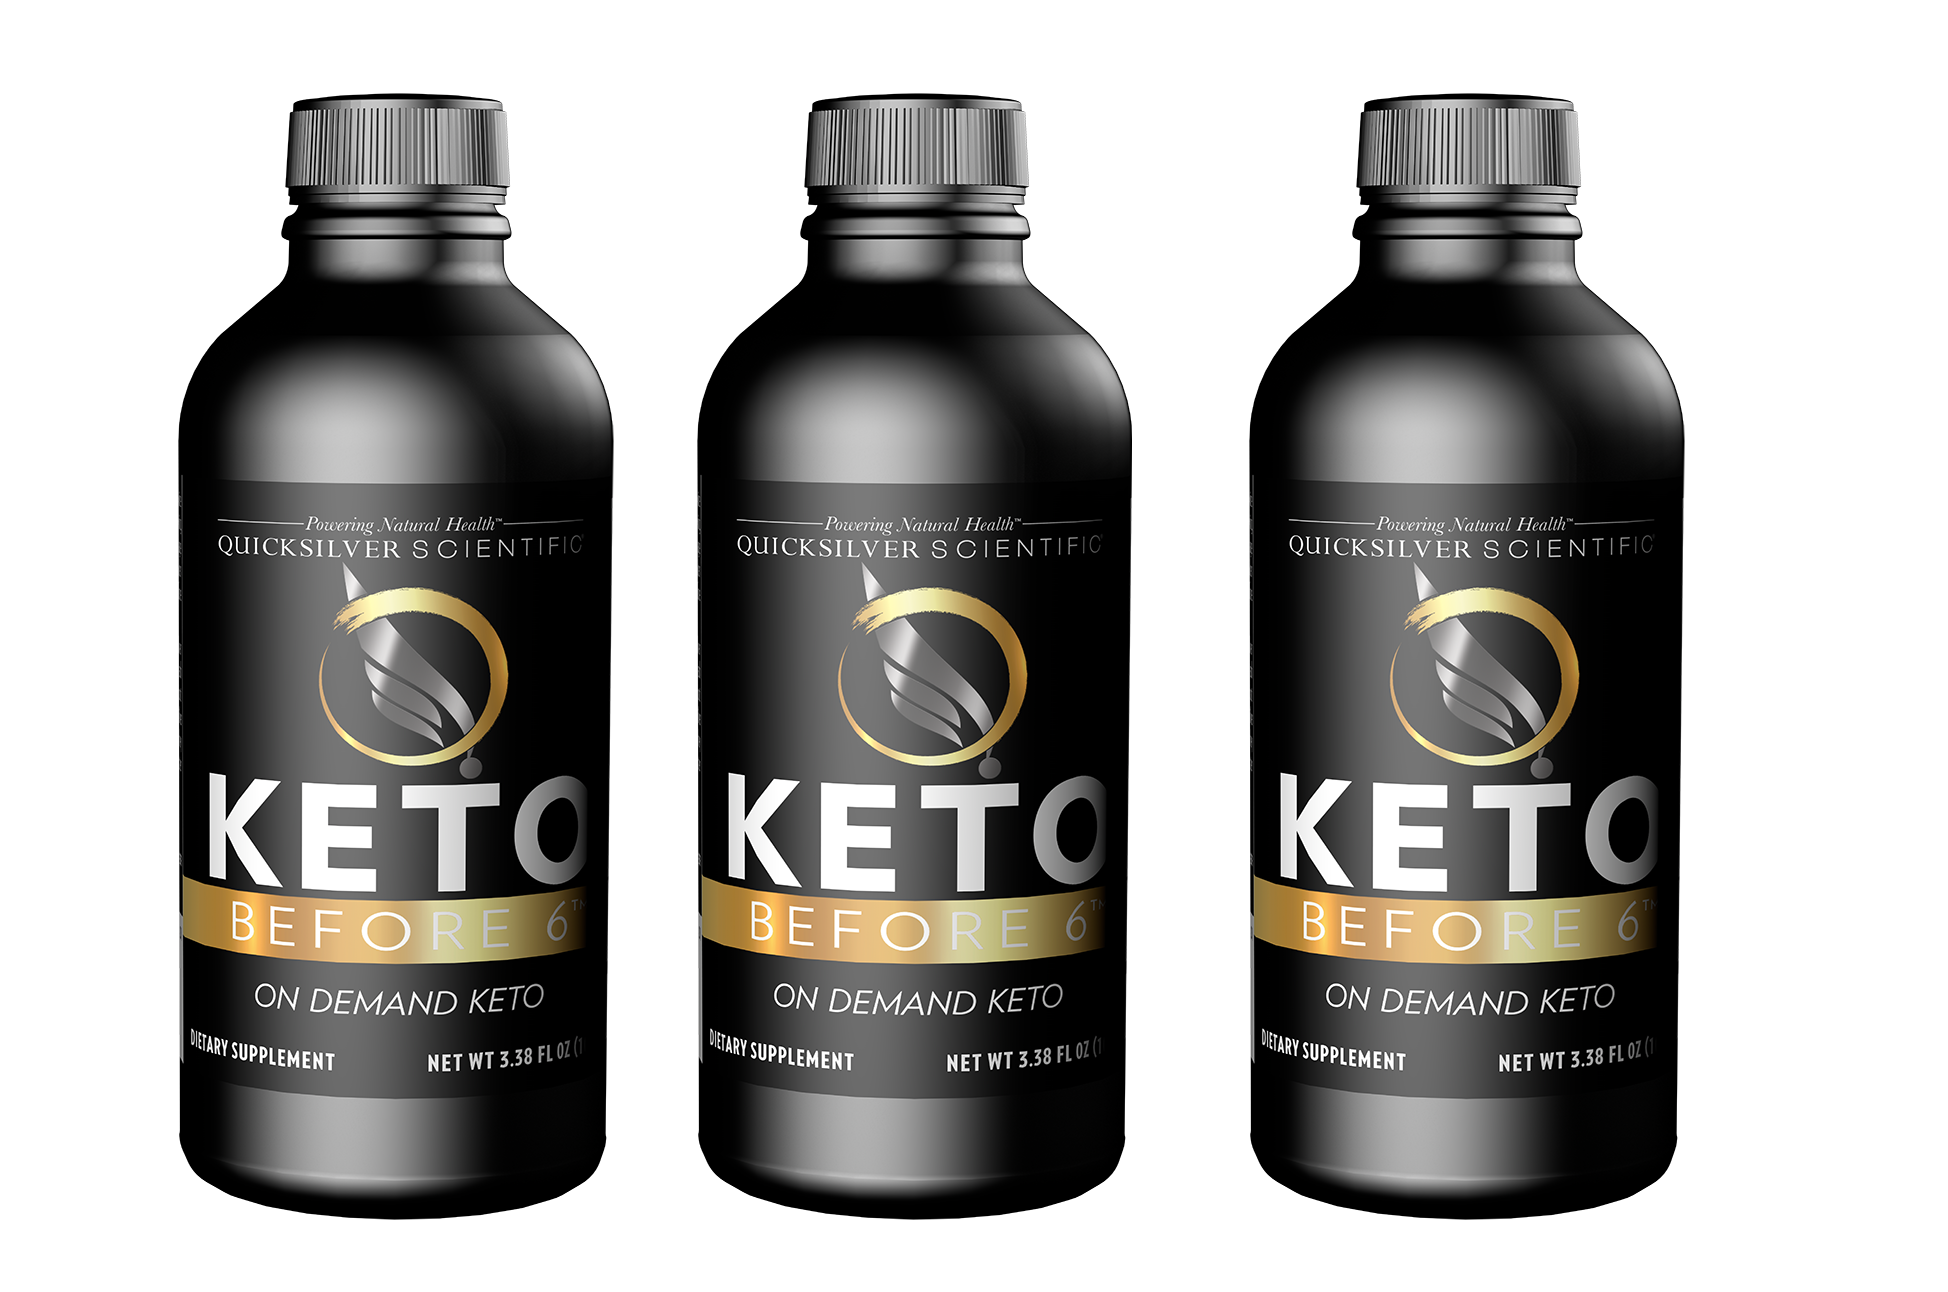 Quicksilver Scientific Keto Before 6™, 100ml, 3-pack